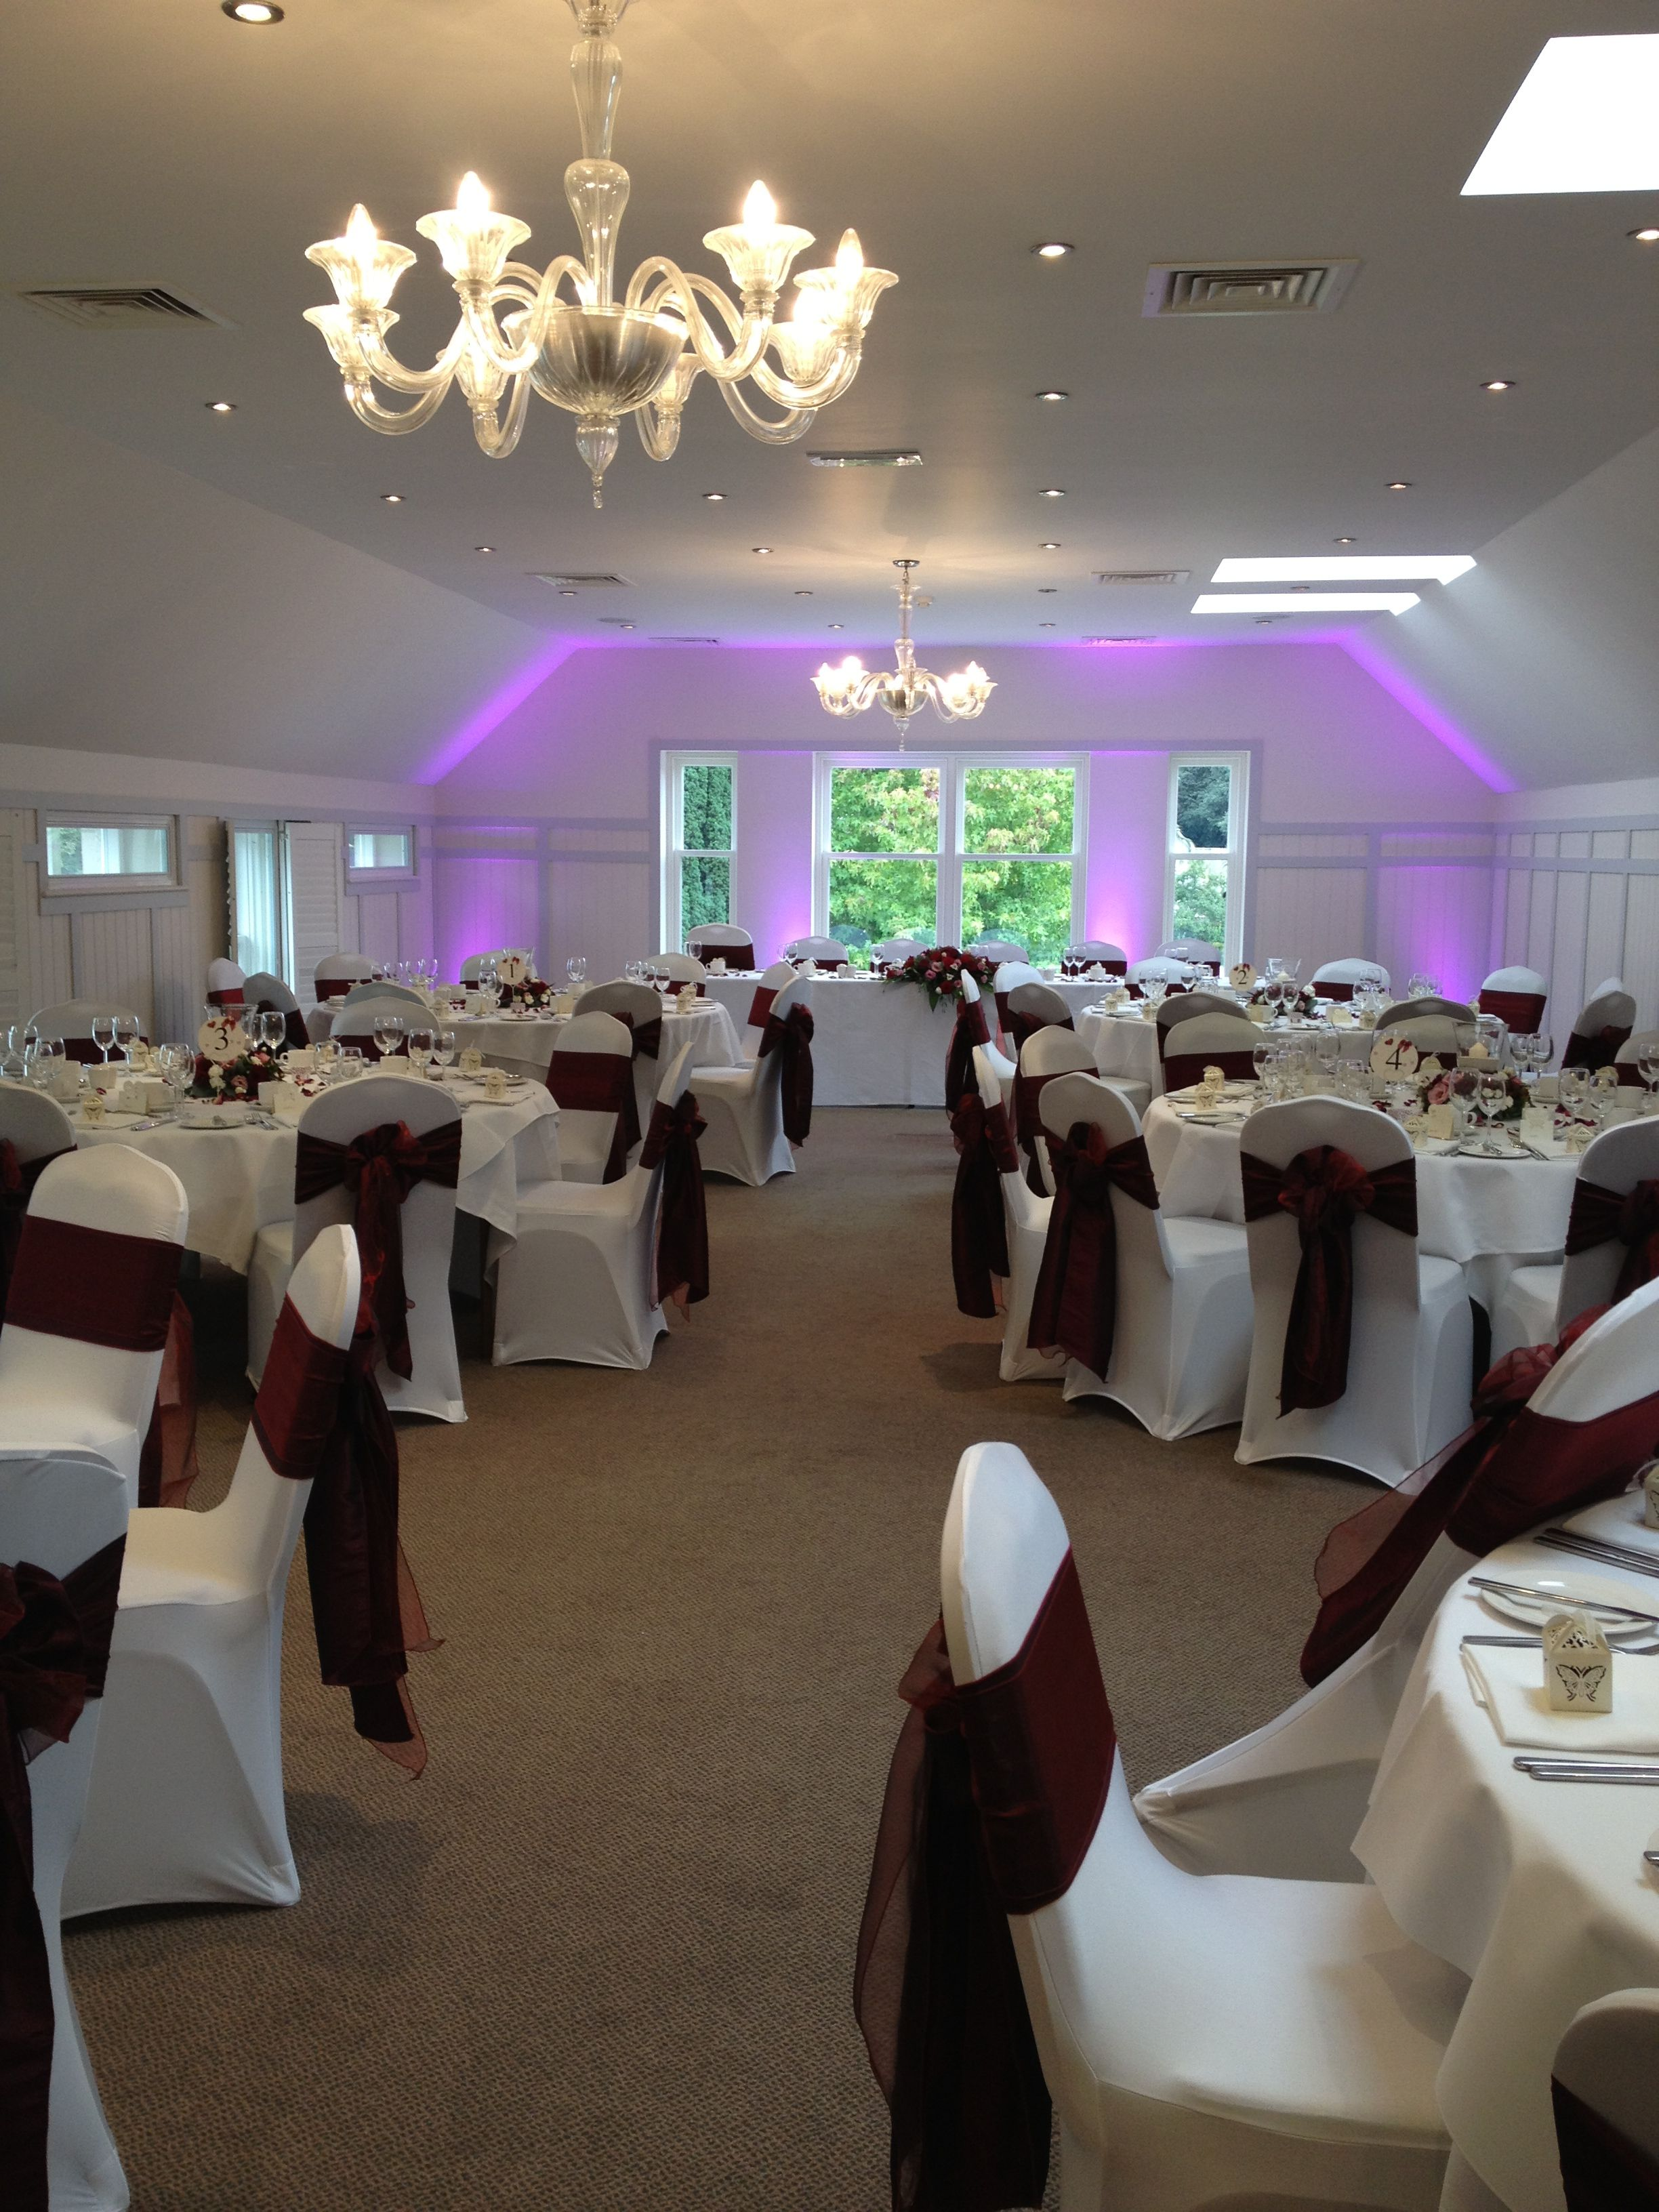 burgundy chair covers wedding cotton hire a traditional british breakfast set up with deep red wine and white sashes funky lilac uplighters